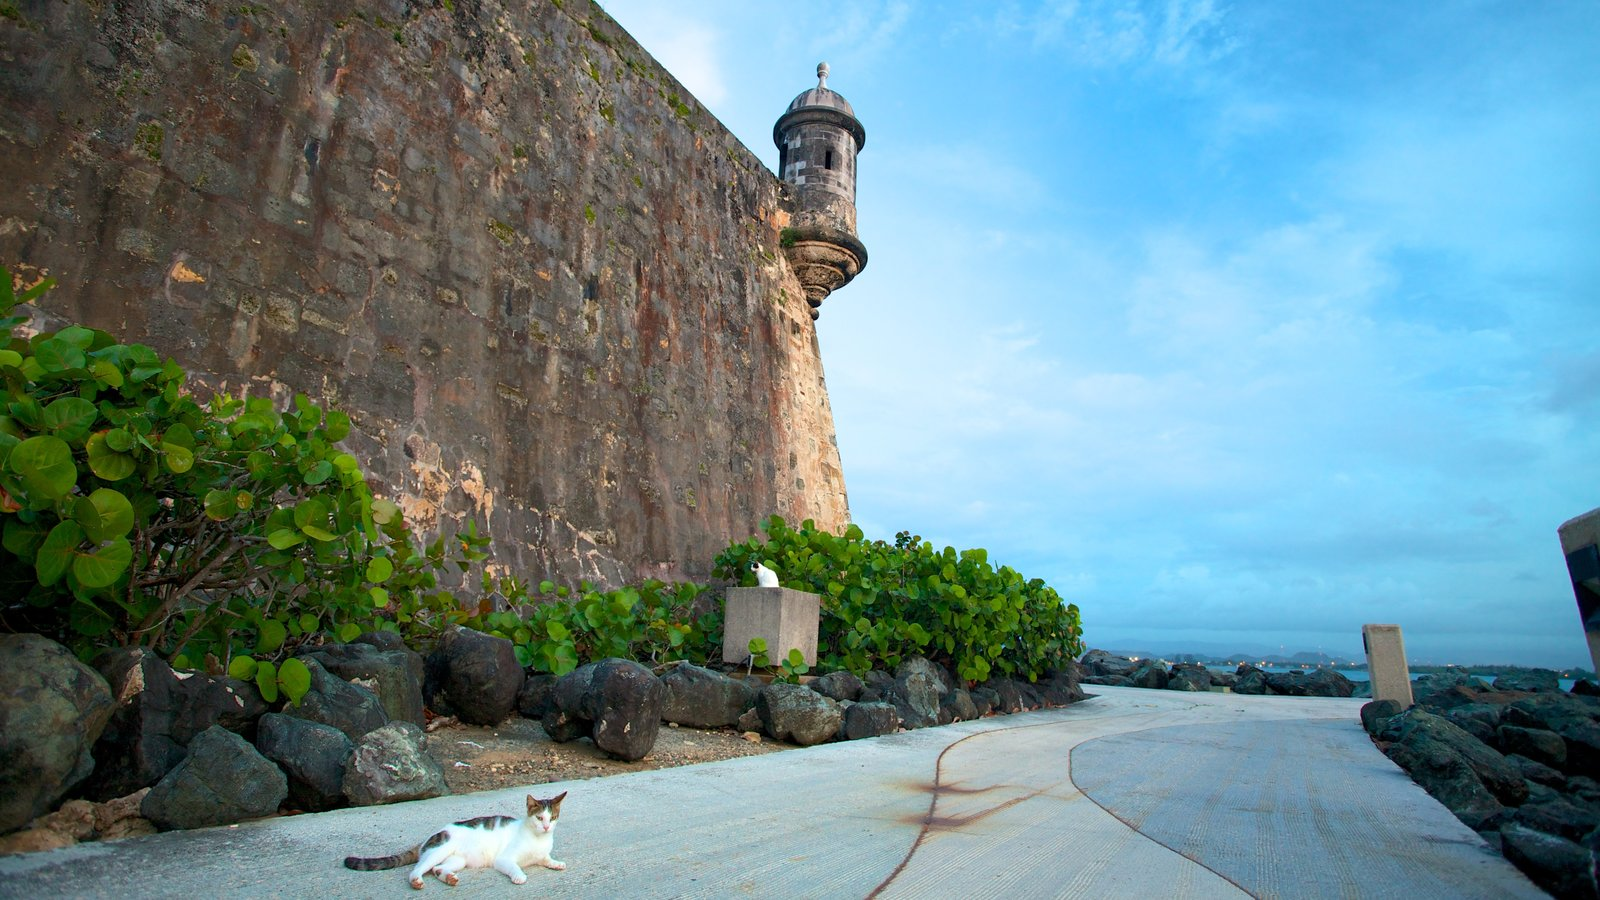 San Juan which includes cuddly or friendly animals and heritage elements